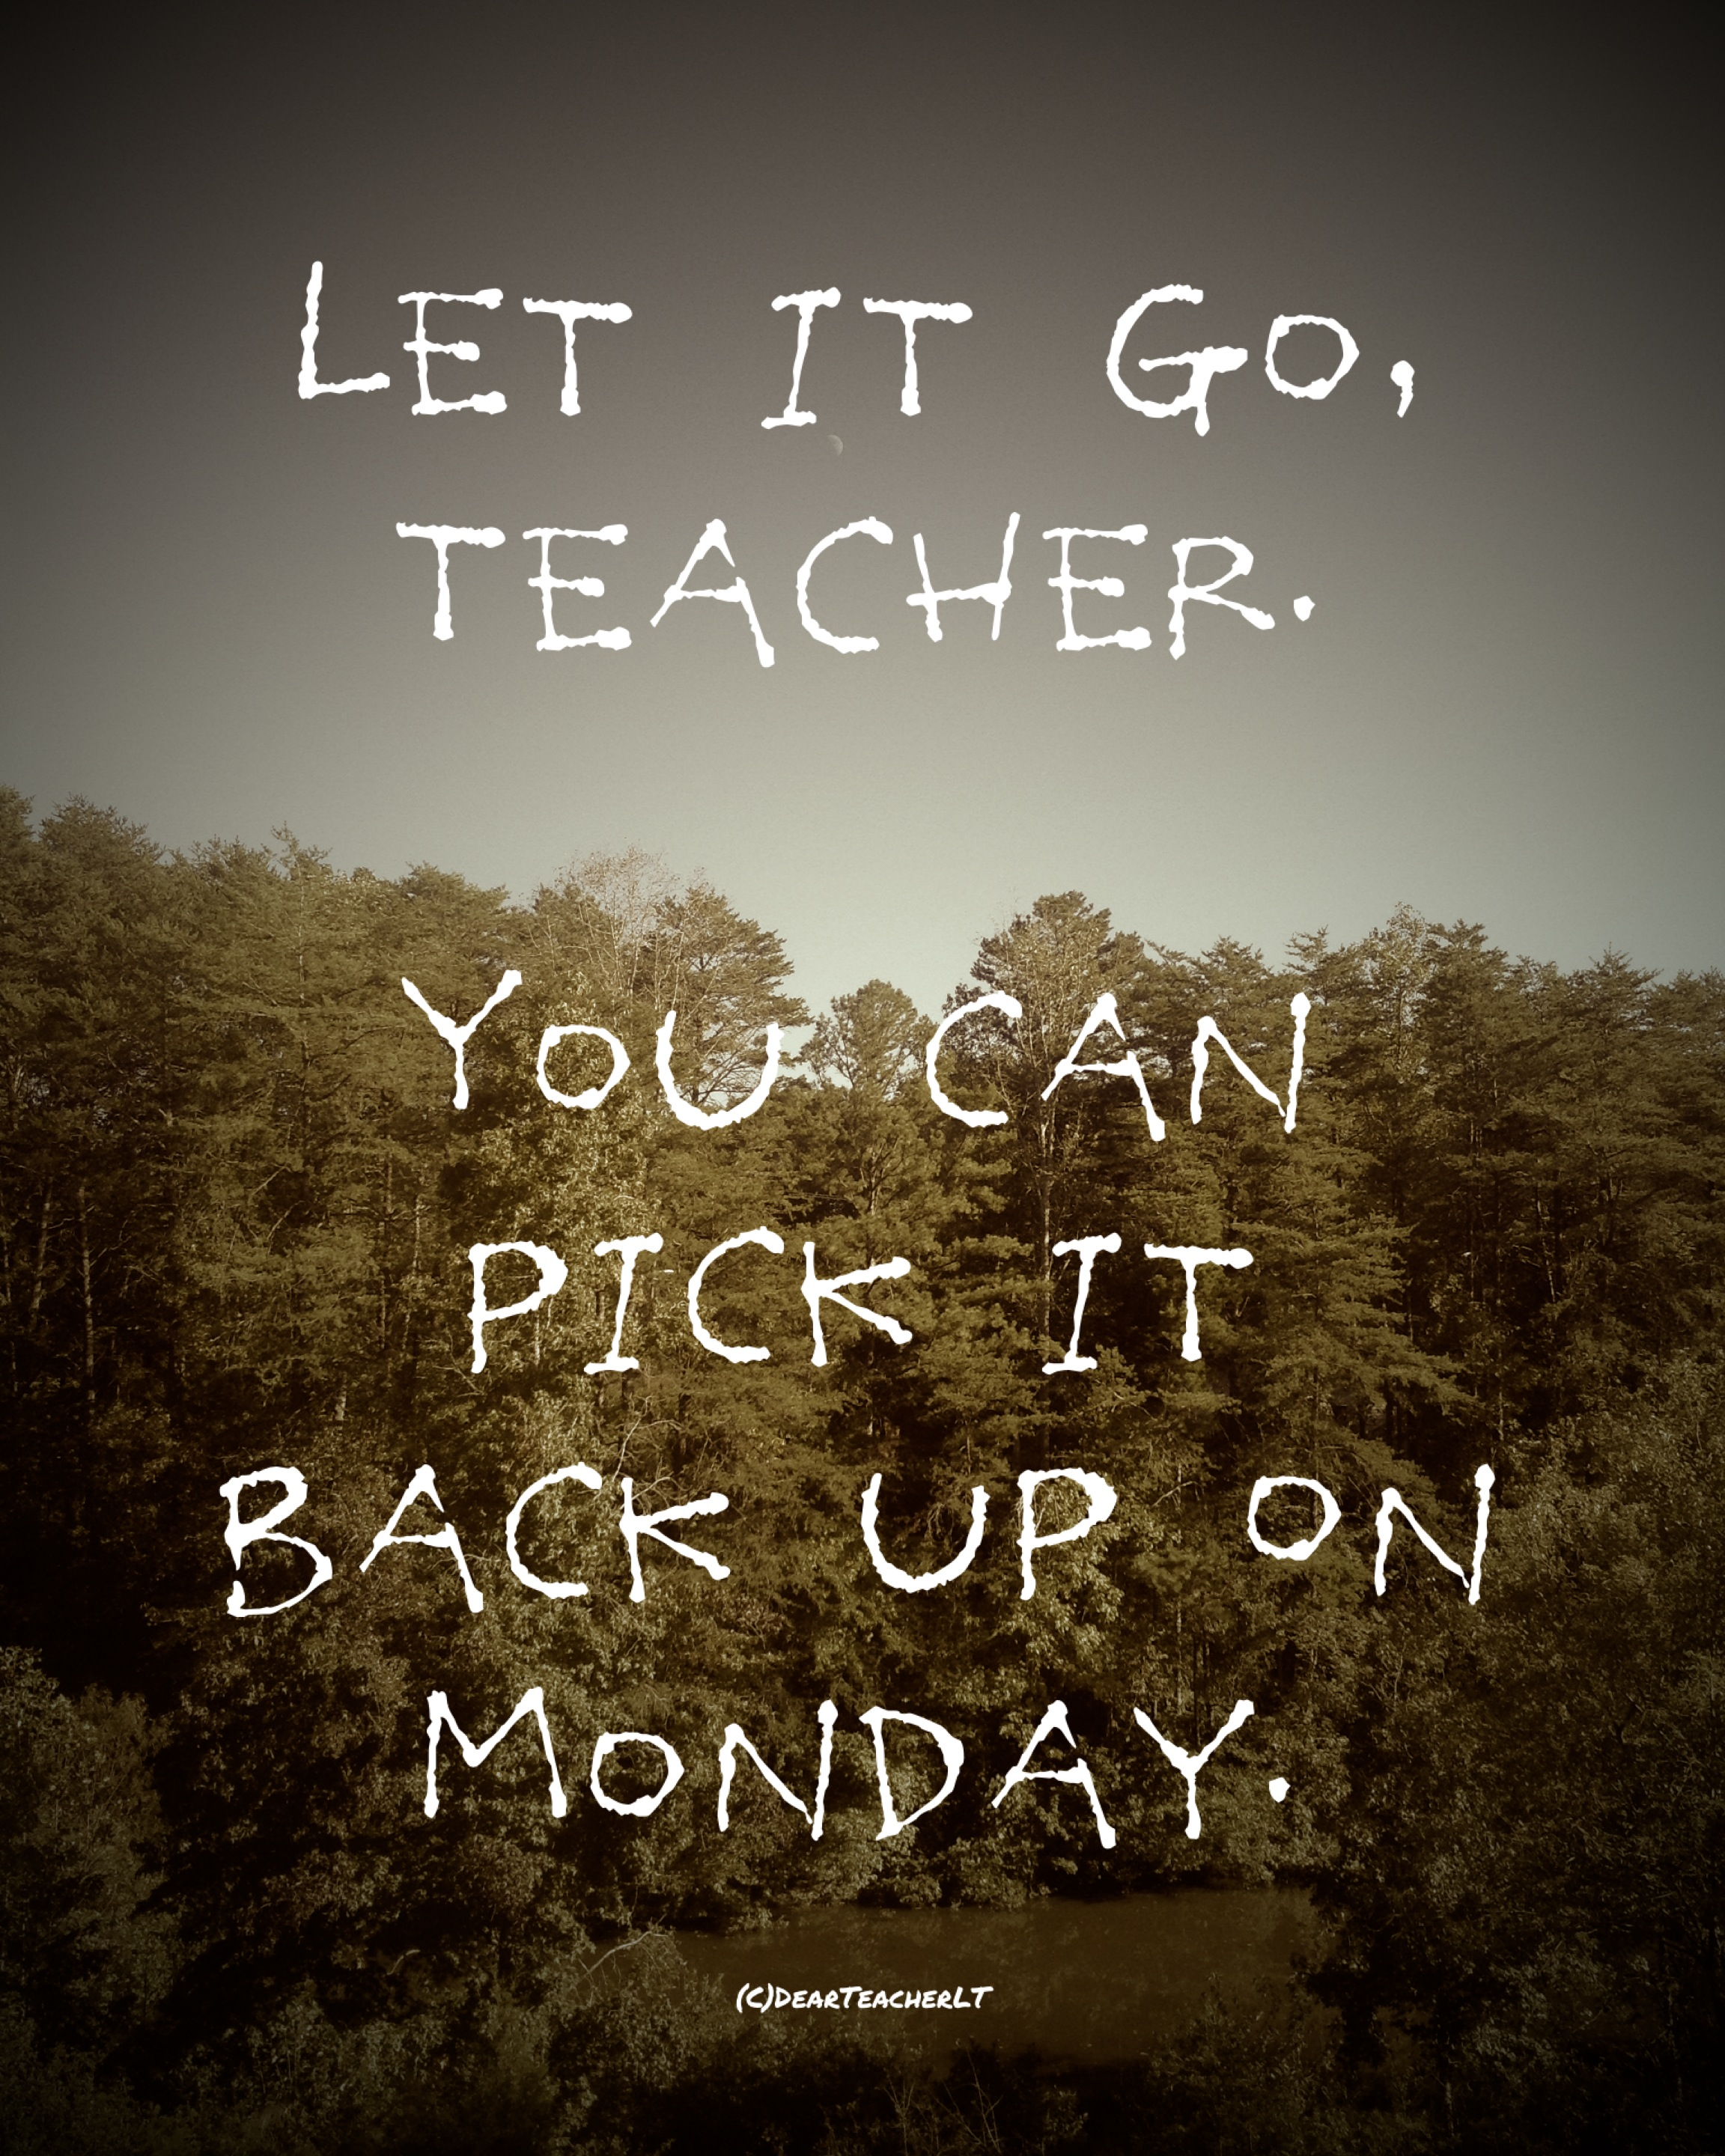 (c)DearTeacherLT2013 (You may use the image if you link back to the blog and/or give credit to Dear Teacher/Love Teacher)